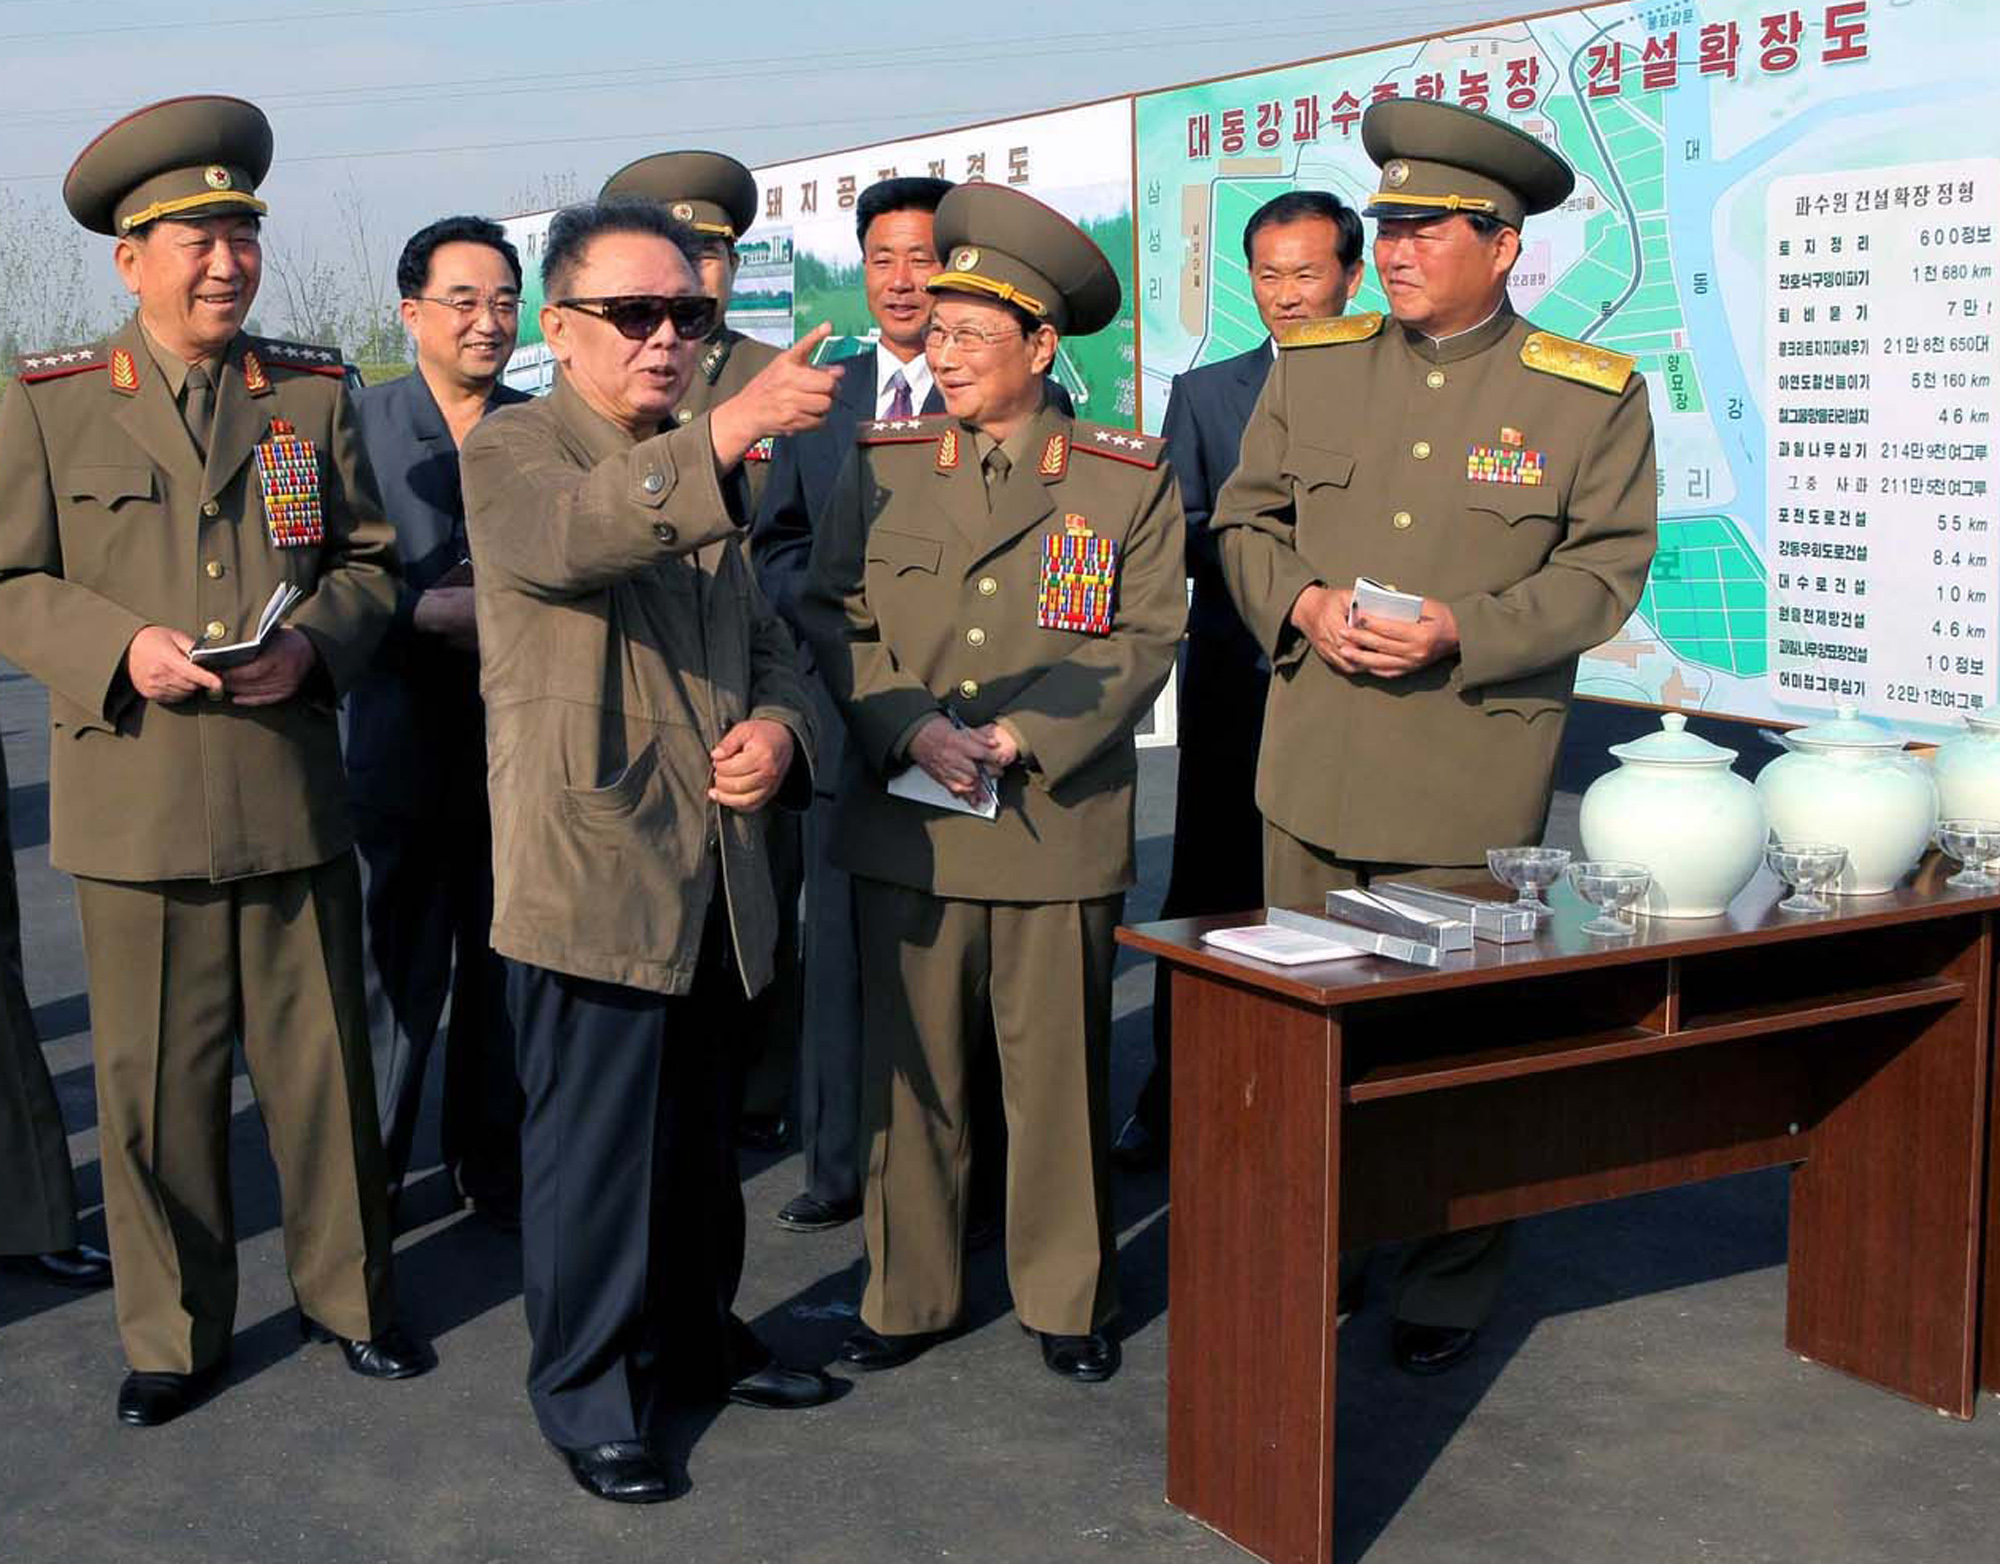 Kim Jong-Il's son could face ruinous inheritance: analysts